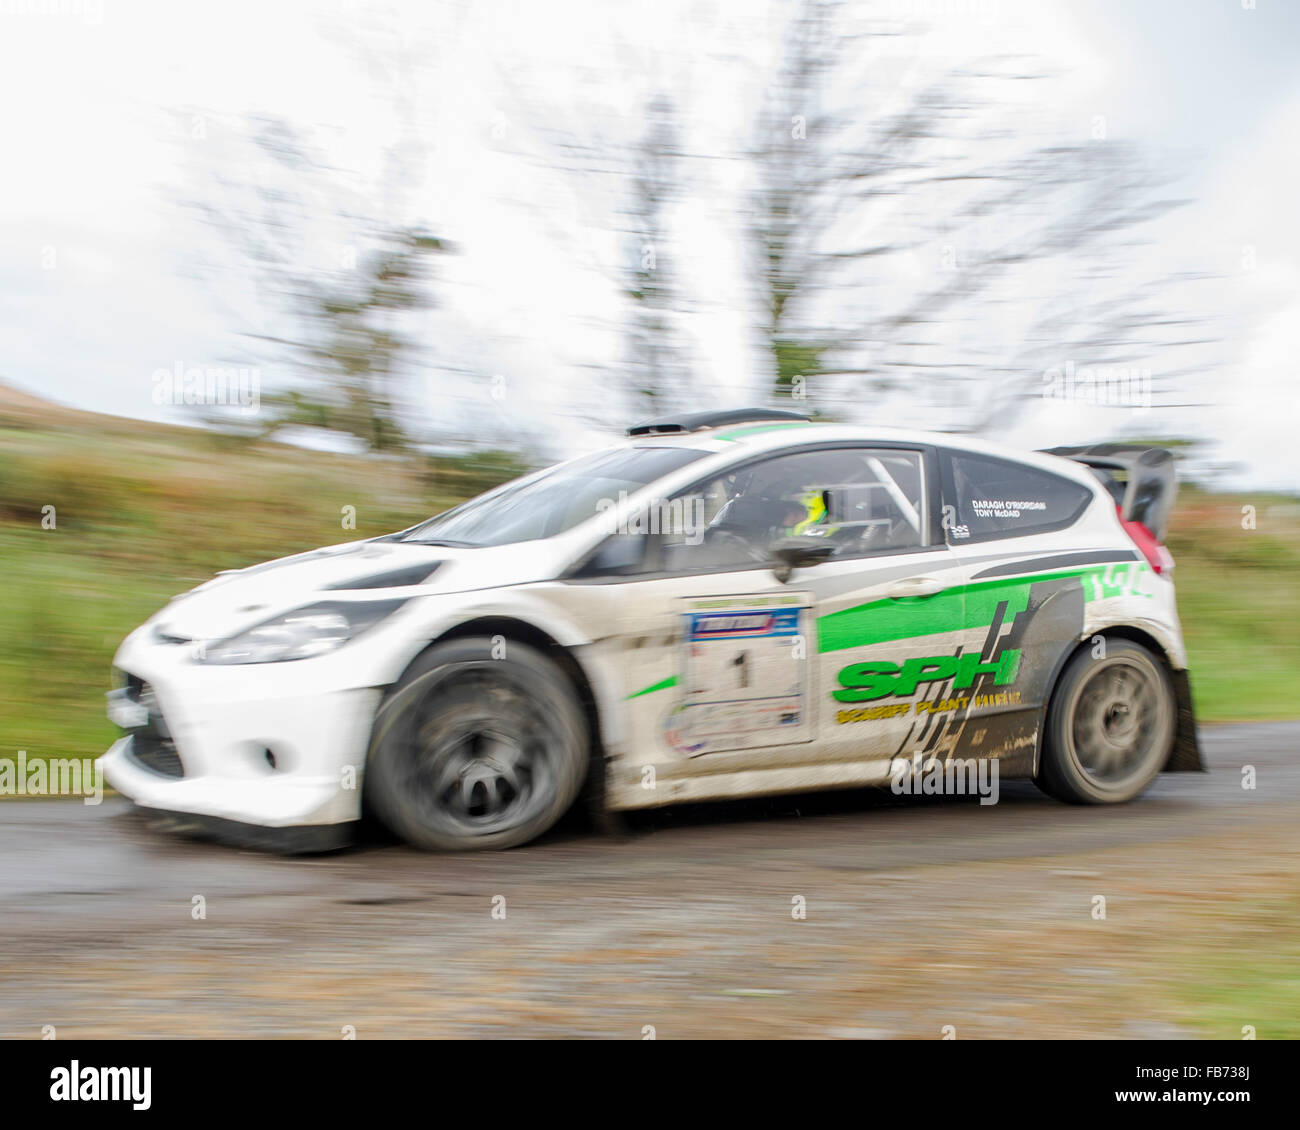 rally-car-participating-in-the-2015-fast